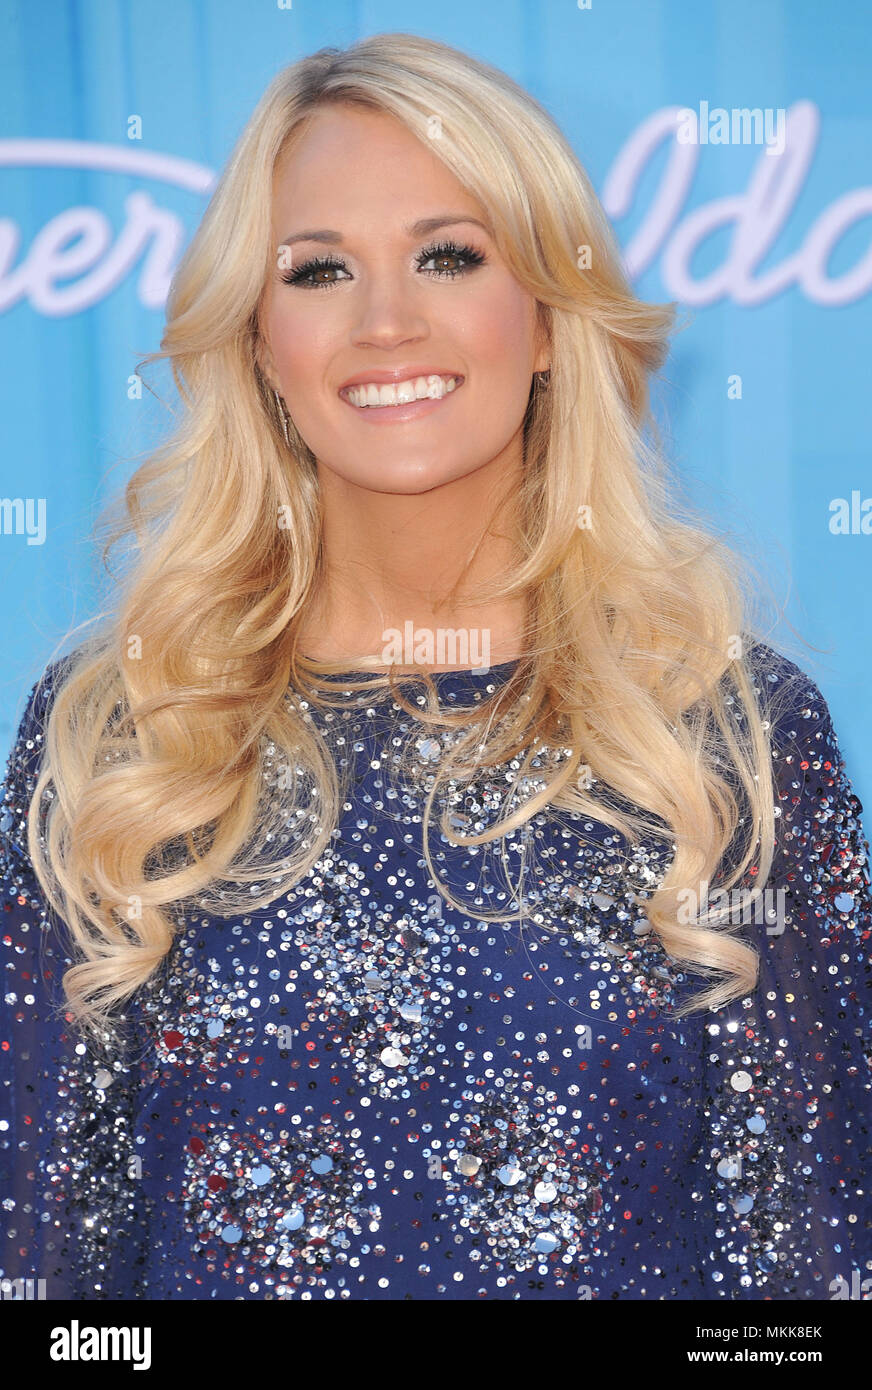 Carrie Underwood Headshot High Resolution Stock Photography And